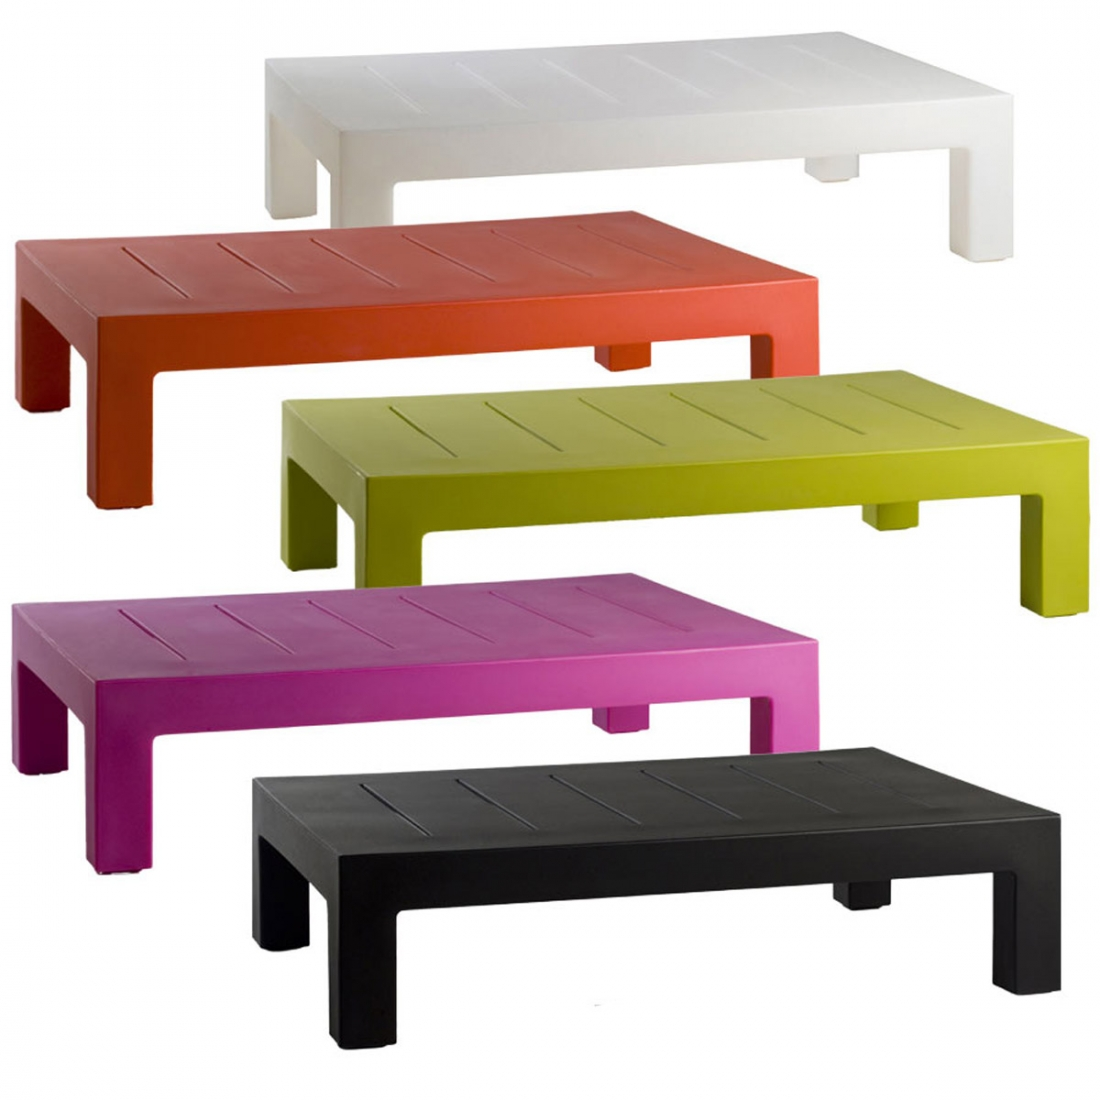 Table basse design d ext rieur jut par vondom - Table basse jardin d ulysse ...